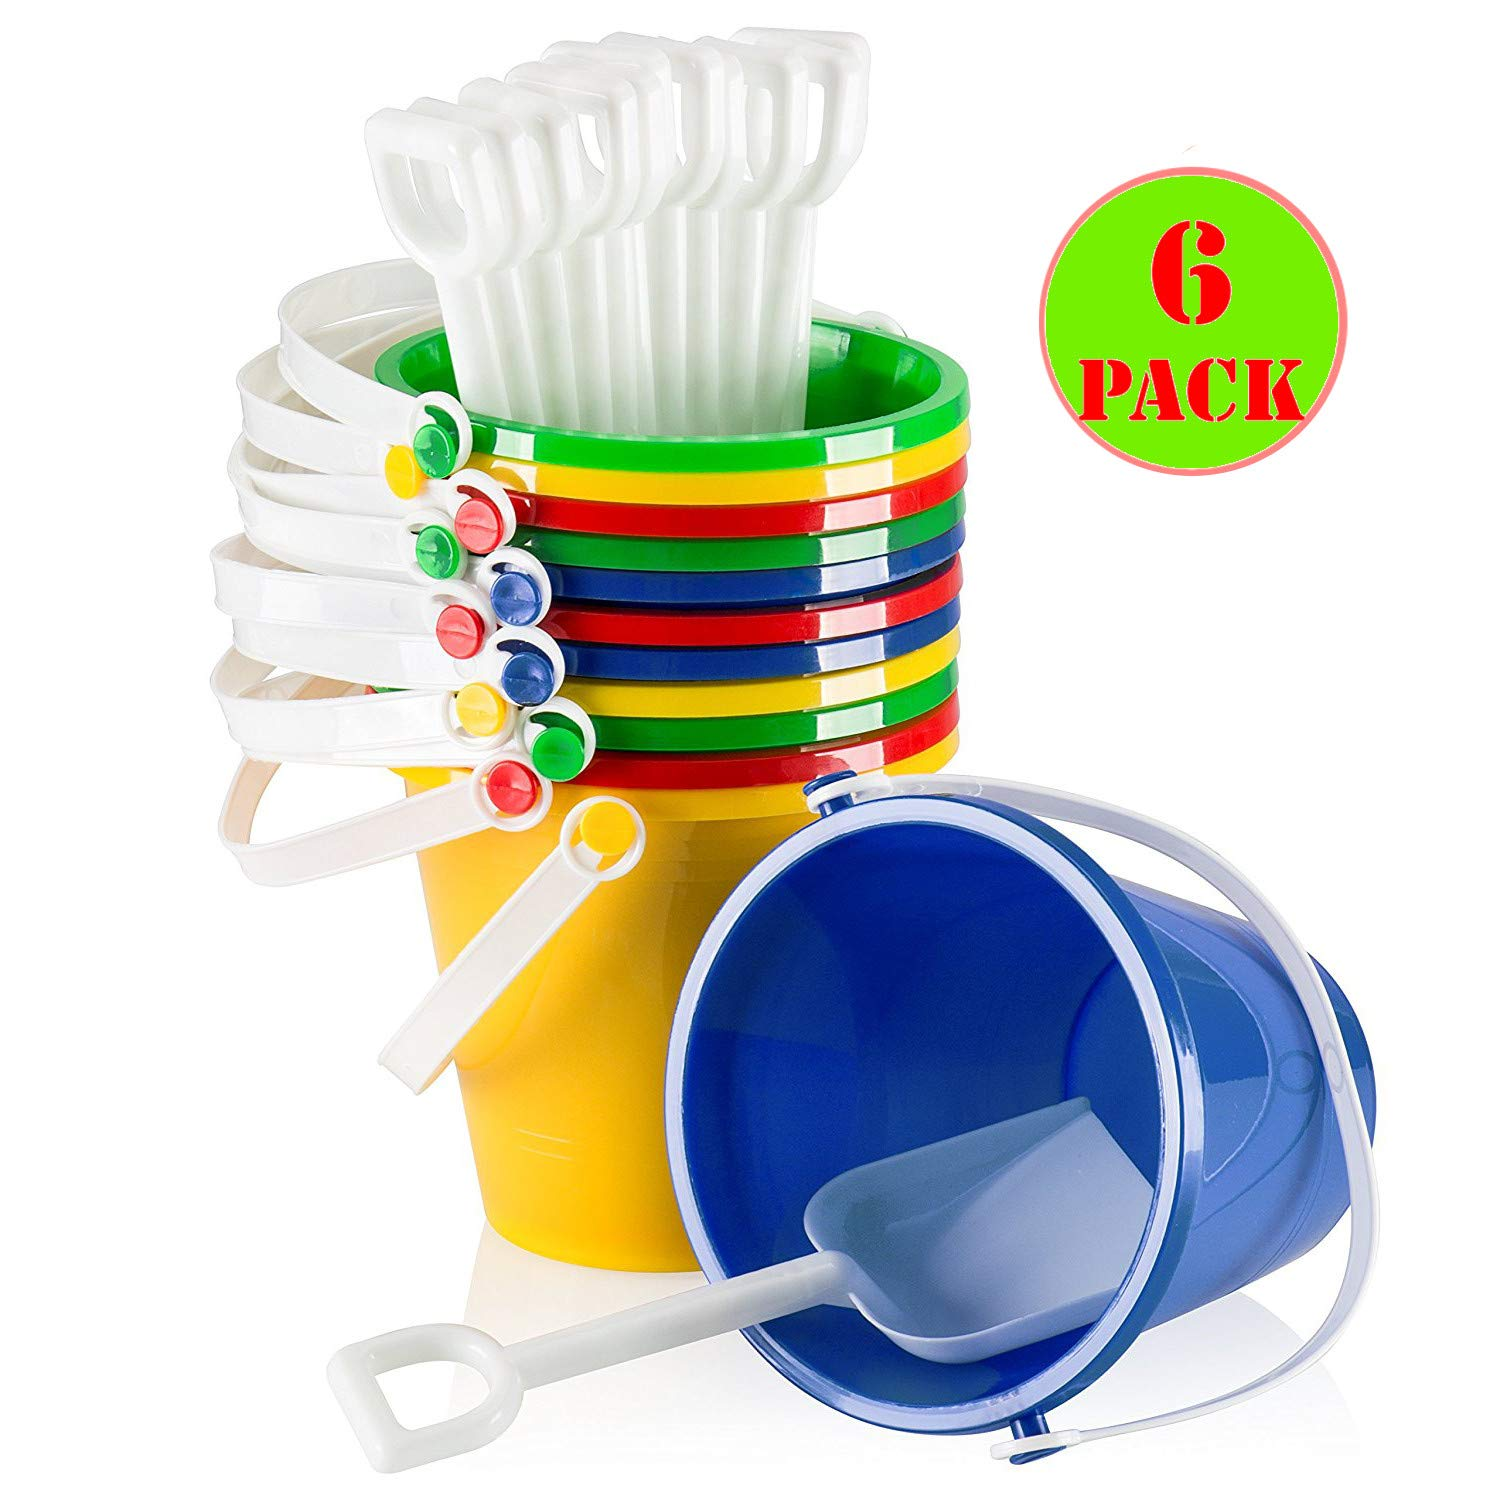 Top Race 5'' Inch Beach Pails Sand Buckets and Sand Shovels Set for Kids | Beach and Sand Toys at the beach | Use for Sand Molds at the Sandbox (Pack of 6 Sets) by Top Race